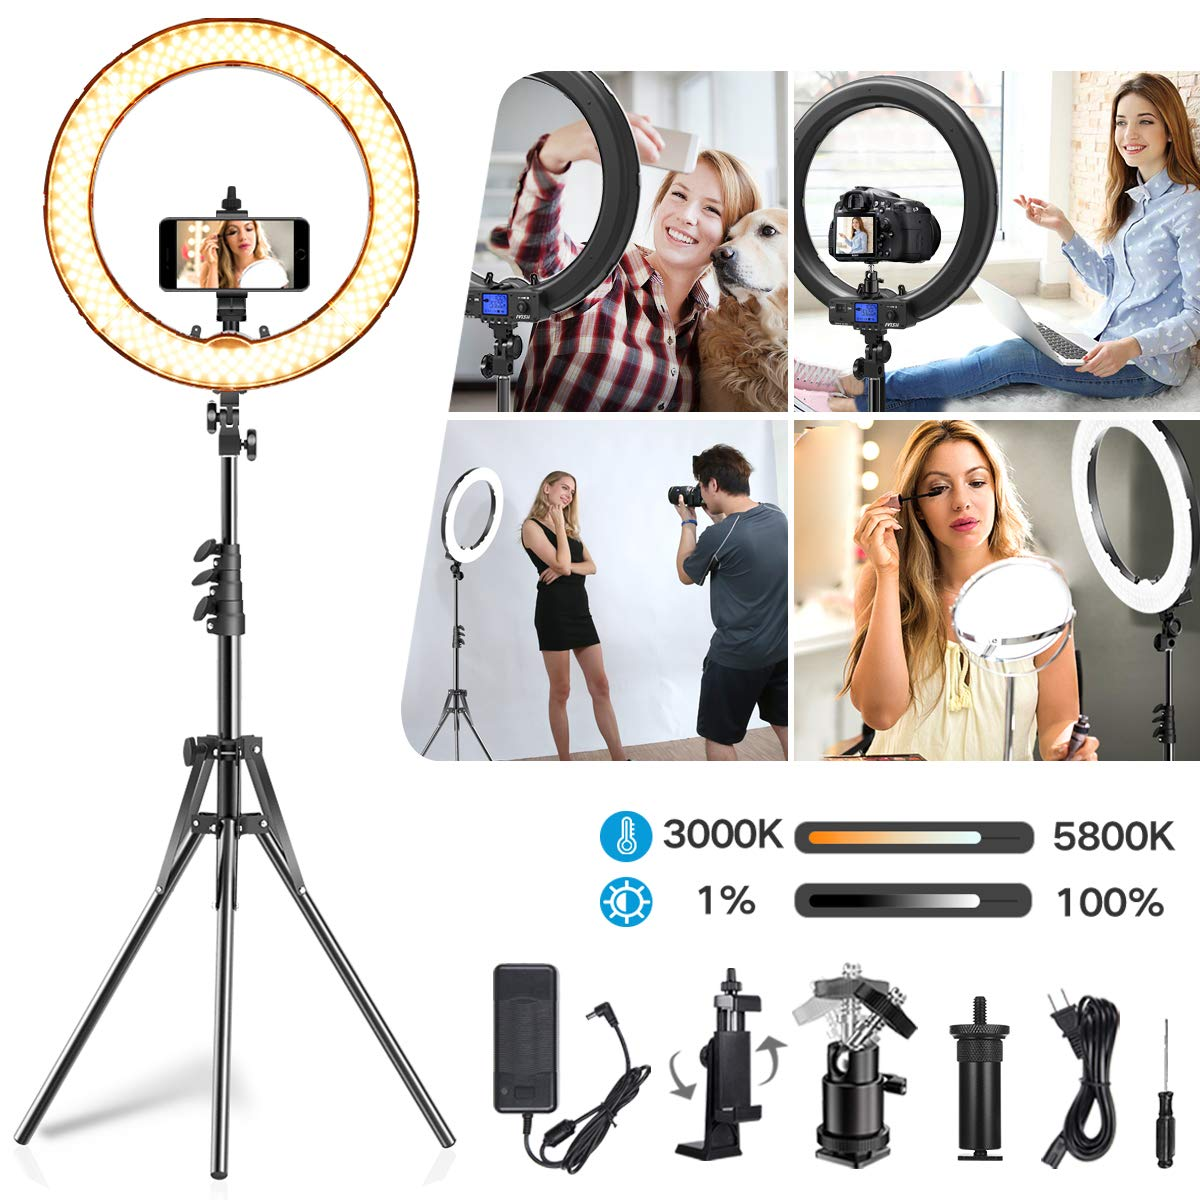 IVISII Ring Light,Upgraded Version 18.5 inch Circle Light with LCD Display Adjustable Color Temperature 3000K-5800K, YouTube Makeup, for Video Shooting, Portrait, Vlog, Selfie (No Carrying Bag) by IVISII